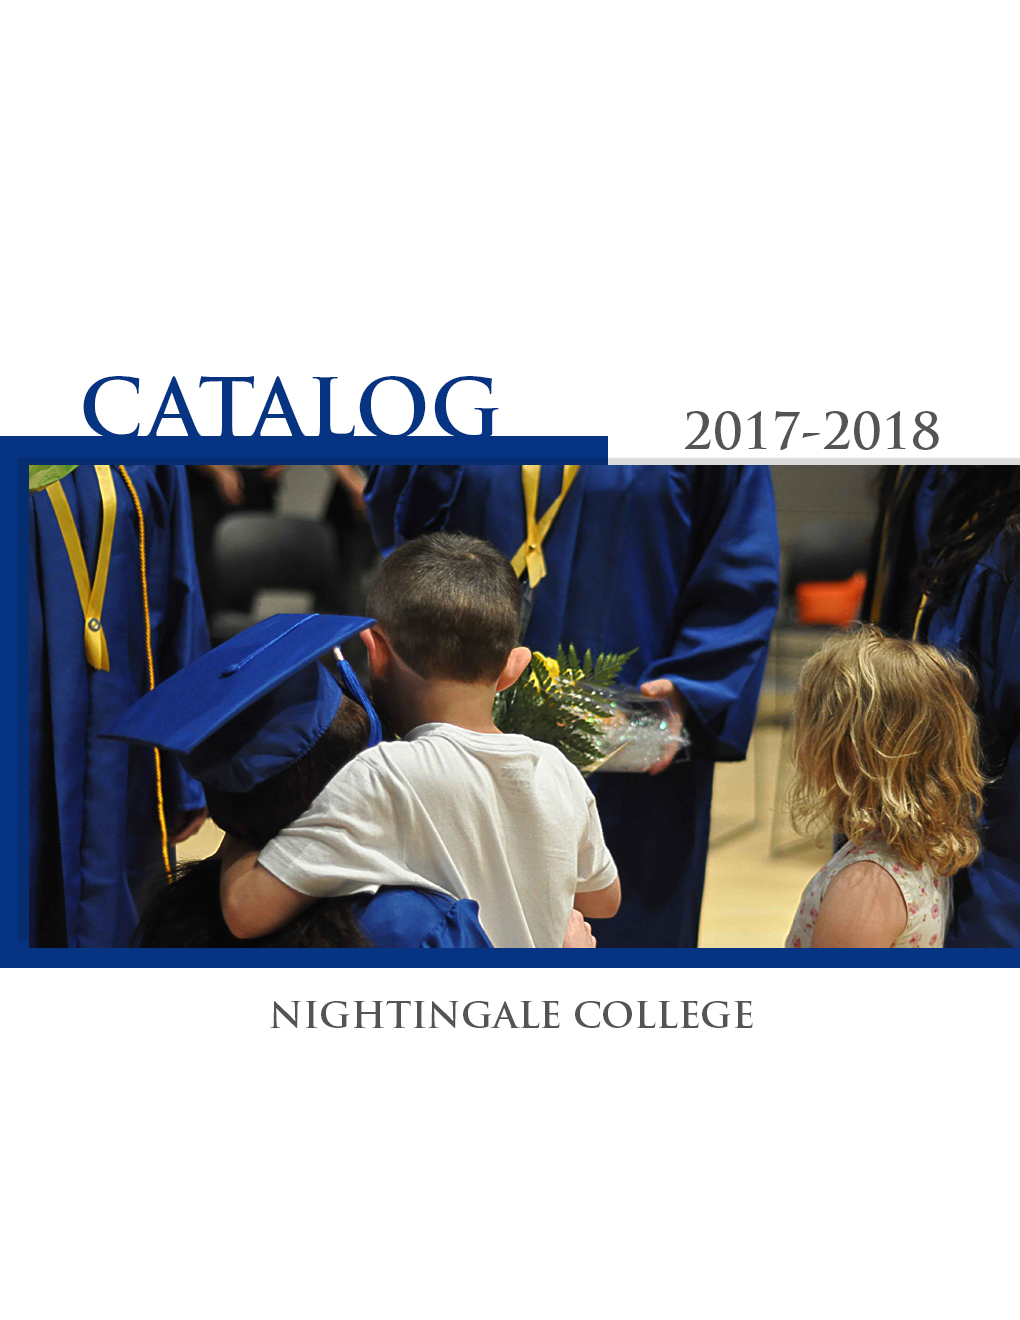 College Catalog Front Cover 2017-2018